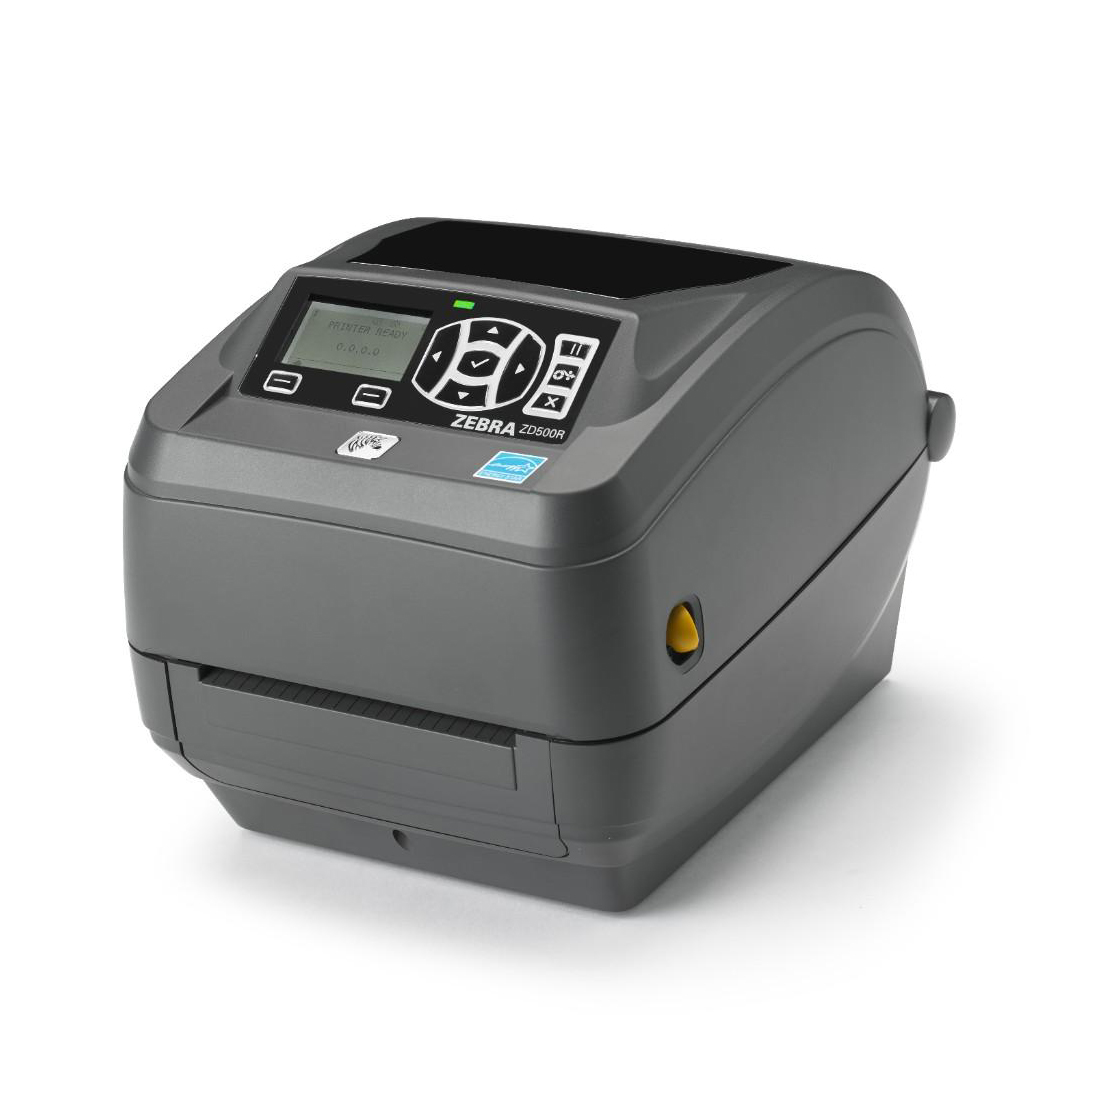 ZD500 RFID Desktop Printer